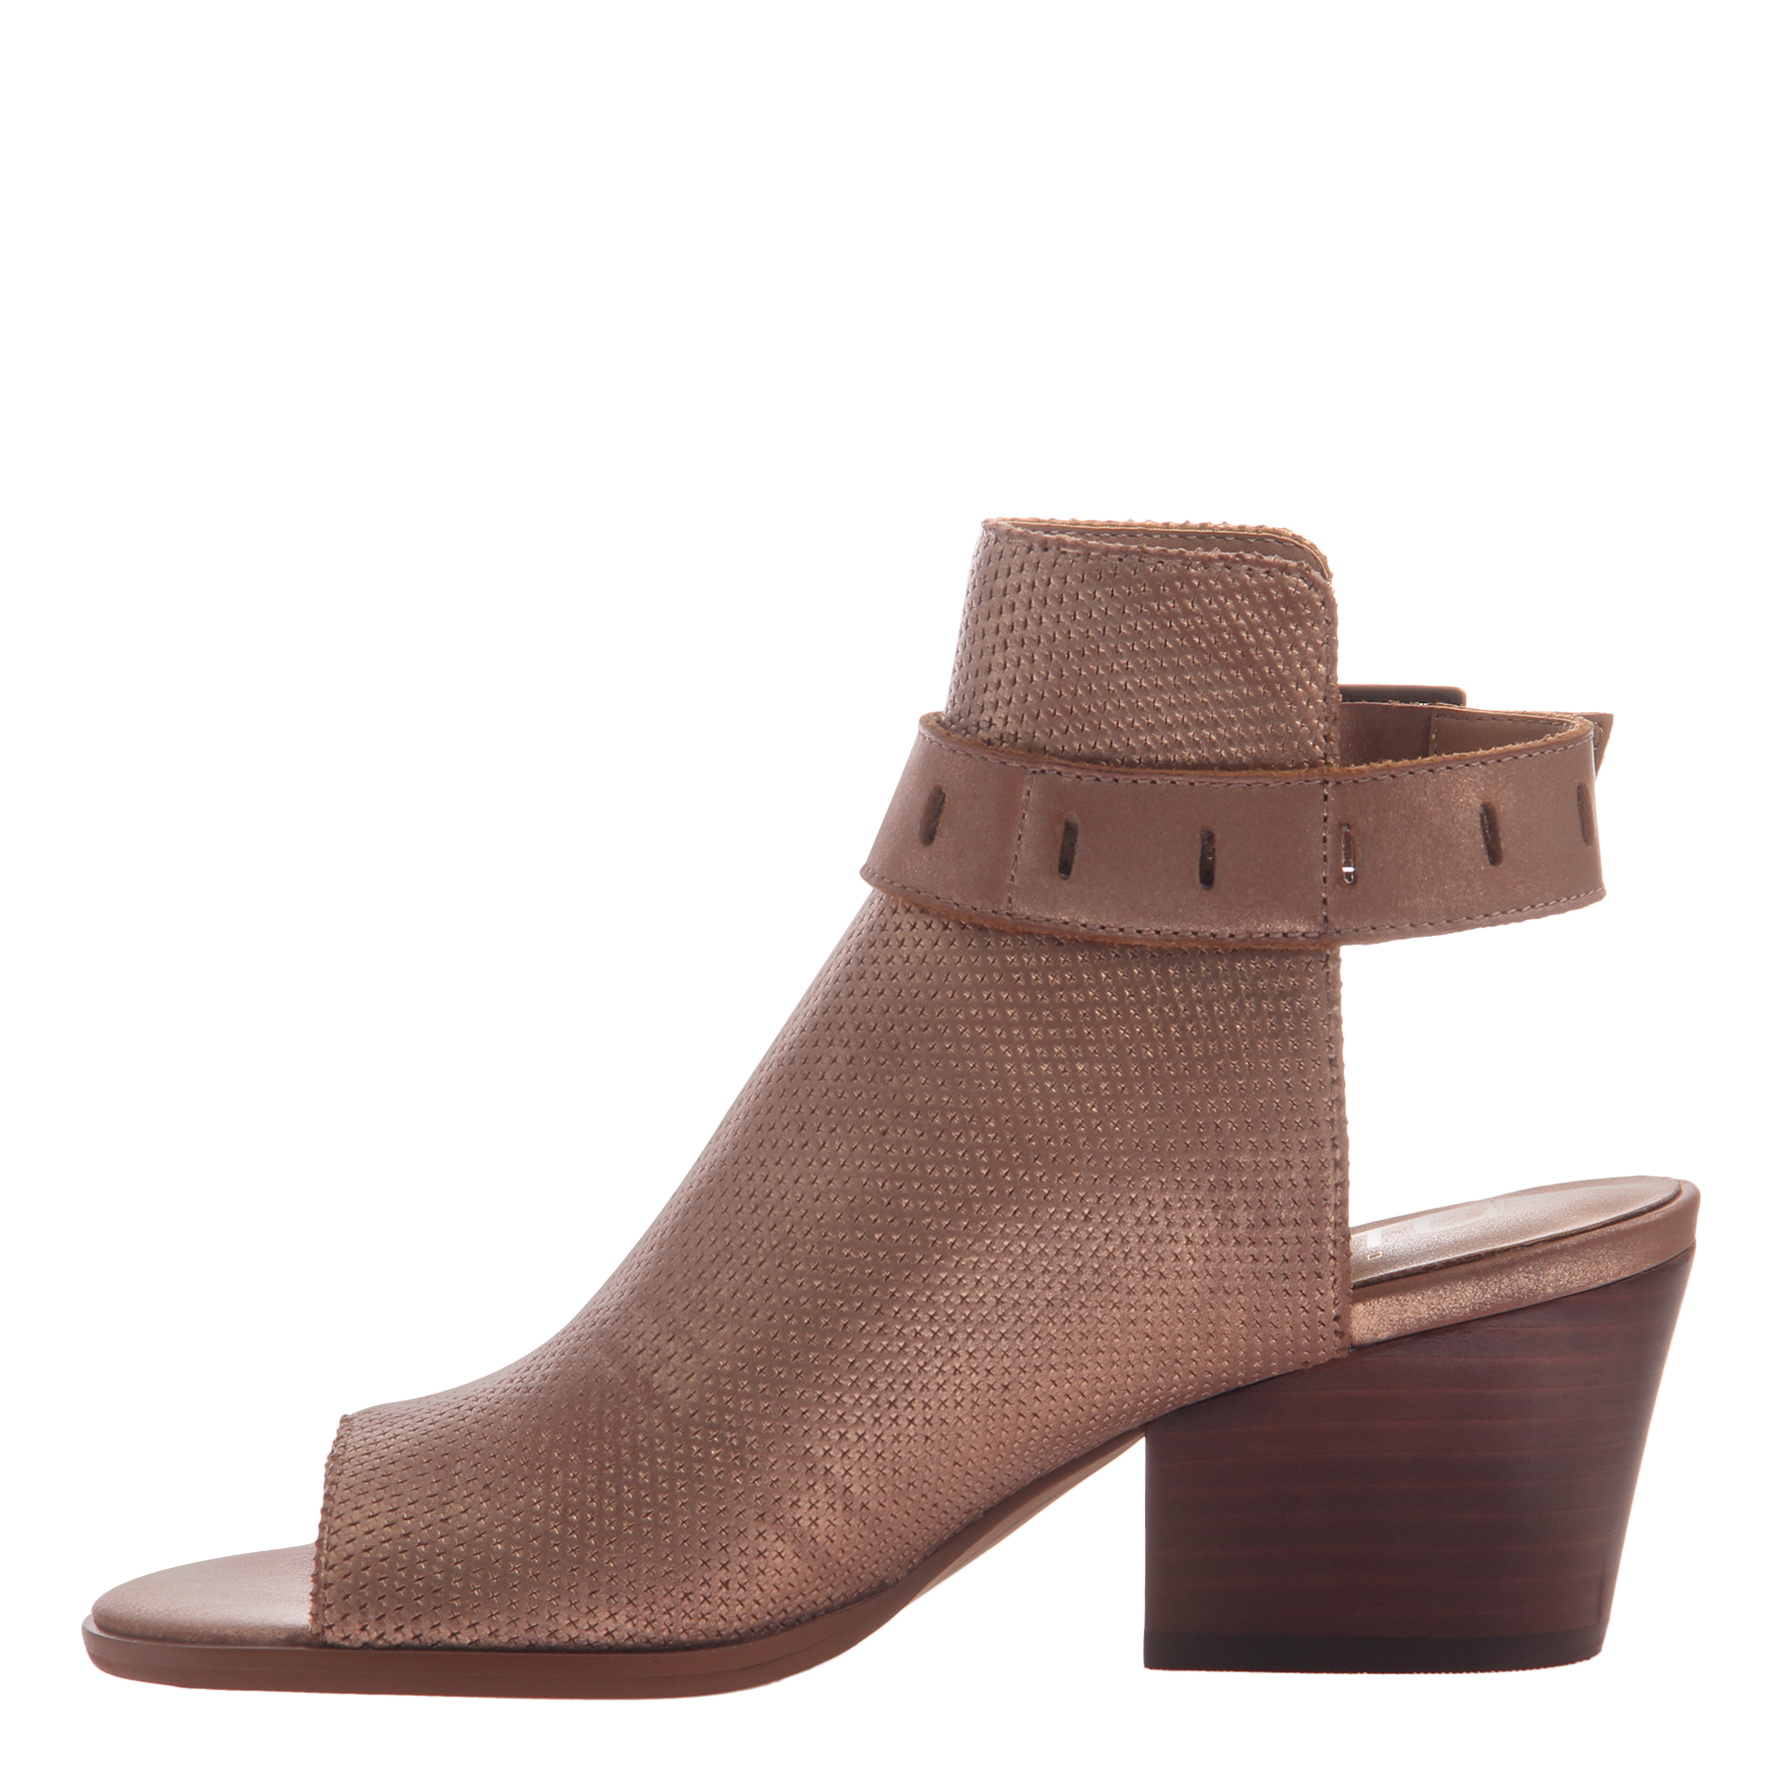 Women's heeled shootie Talullah in copper inside view